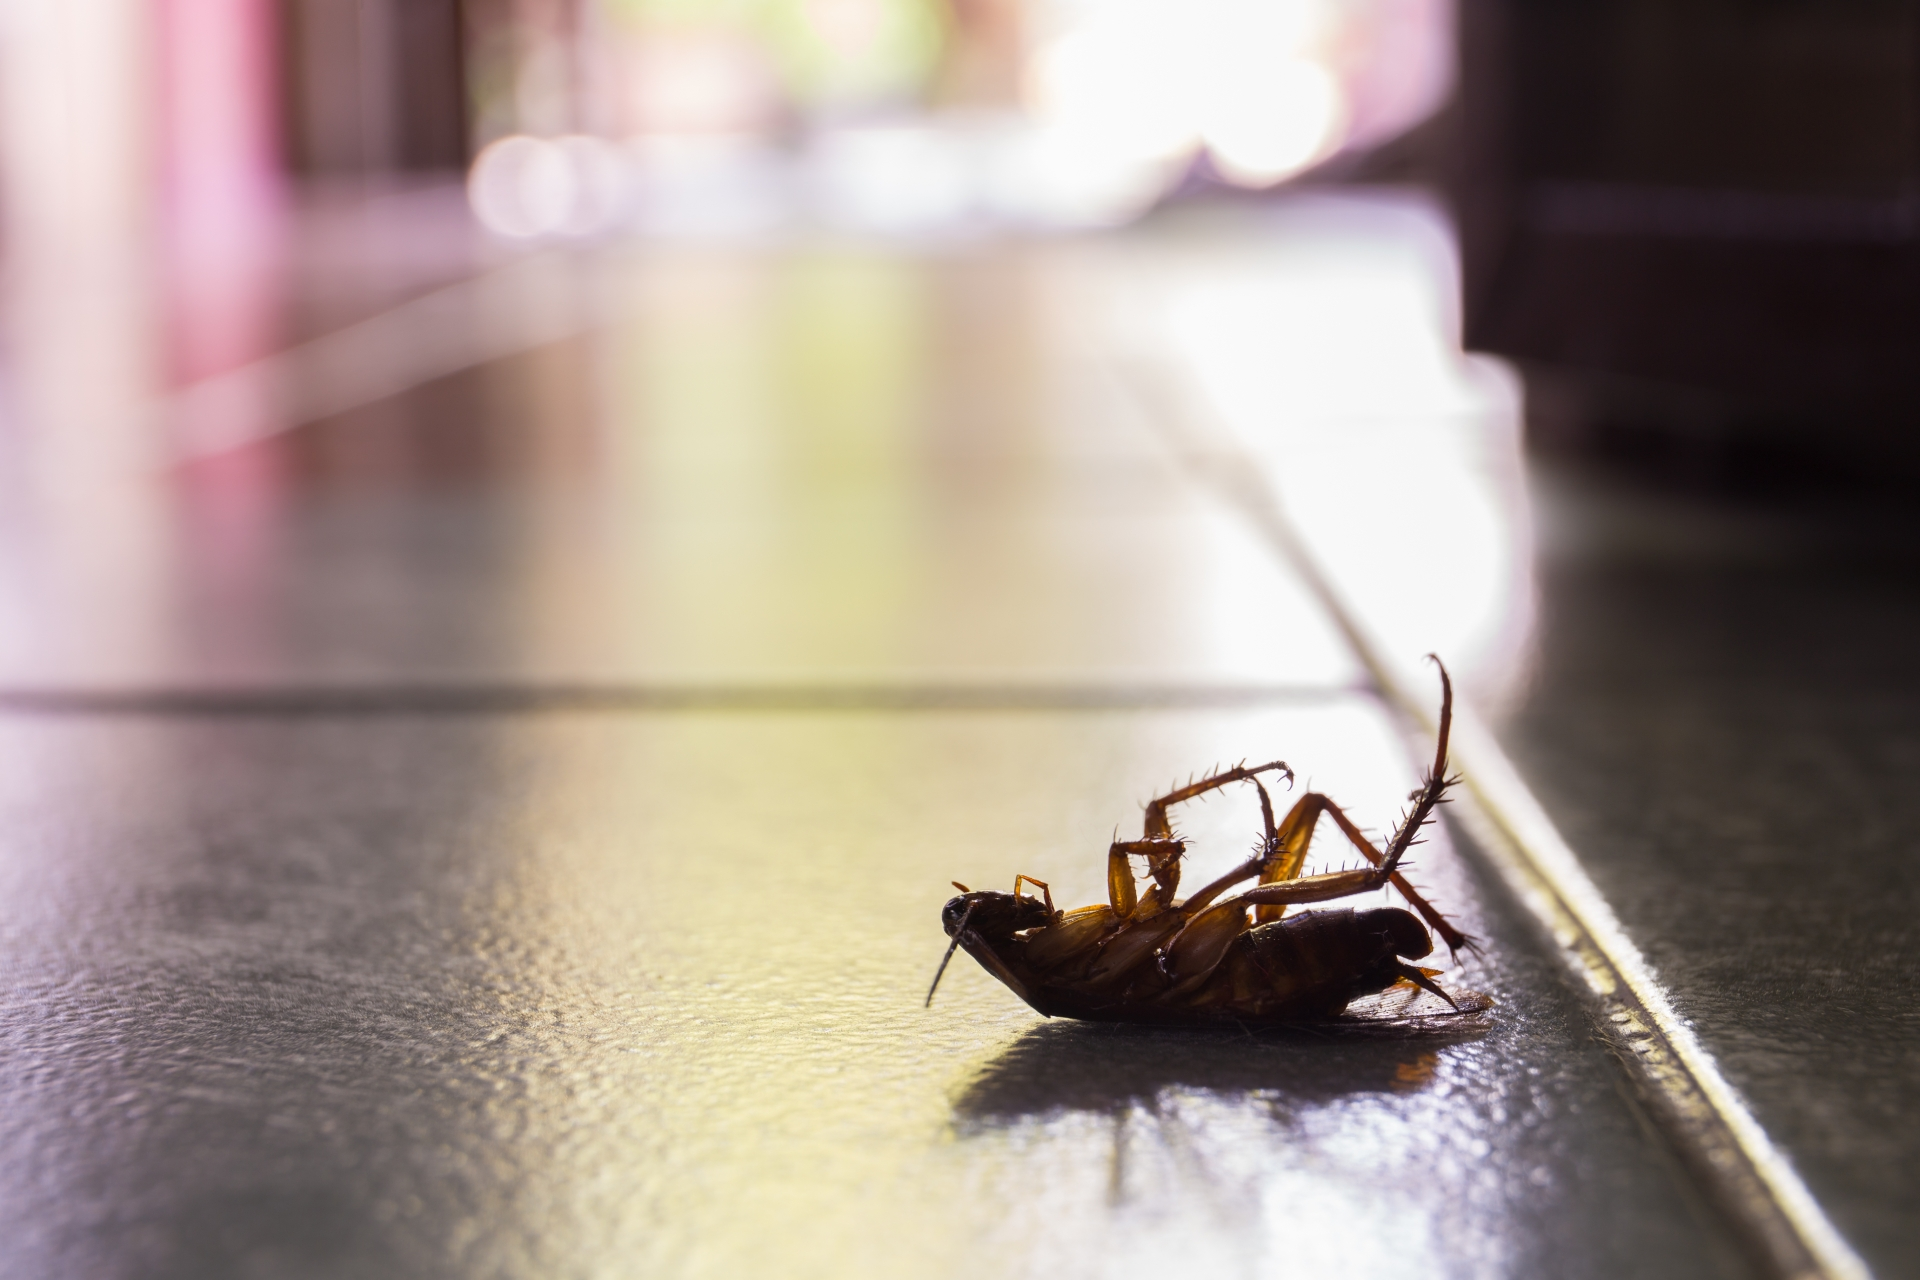 Cockroach Control, Pest Control in Ashtead, KT21. Call Now 020 8166 9746